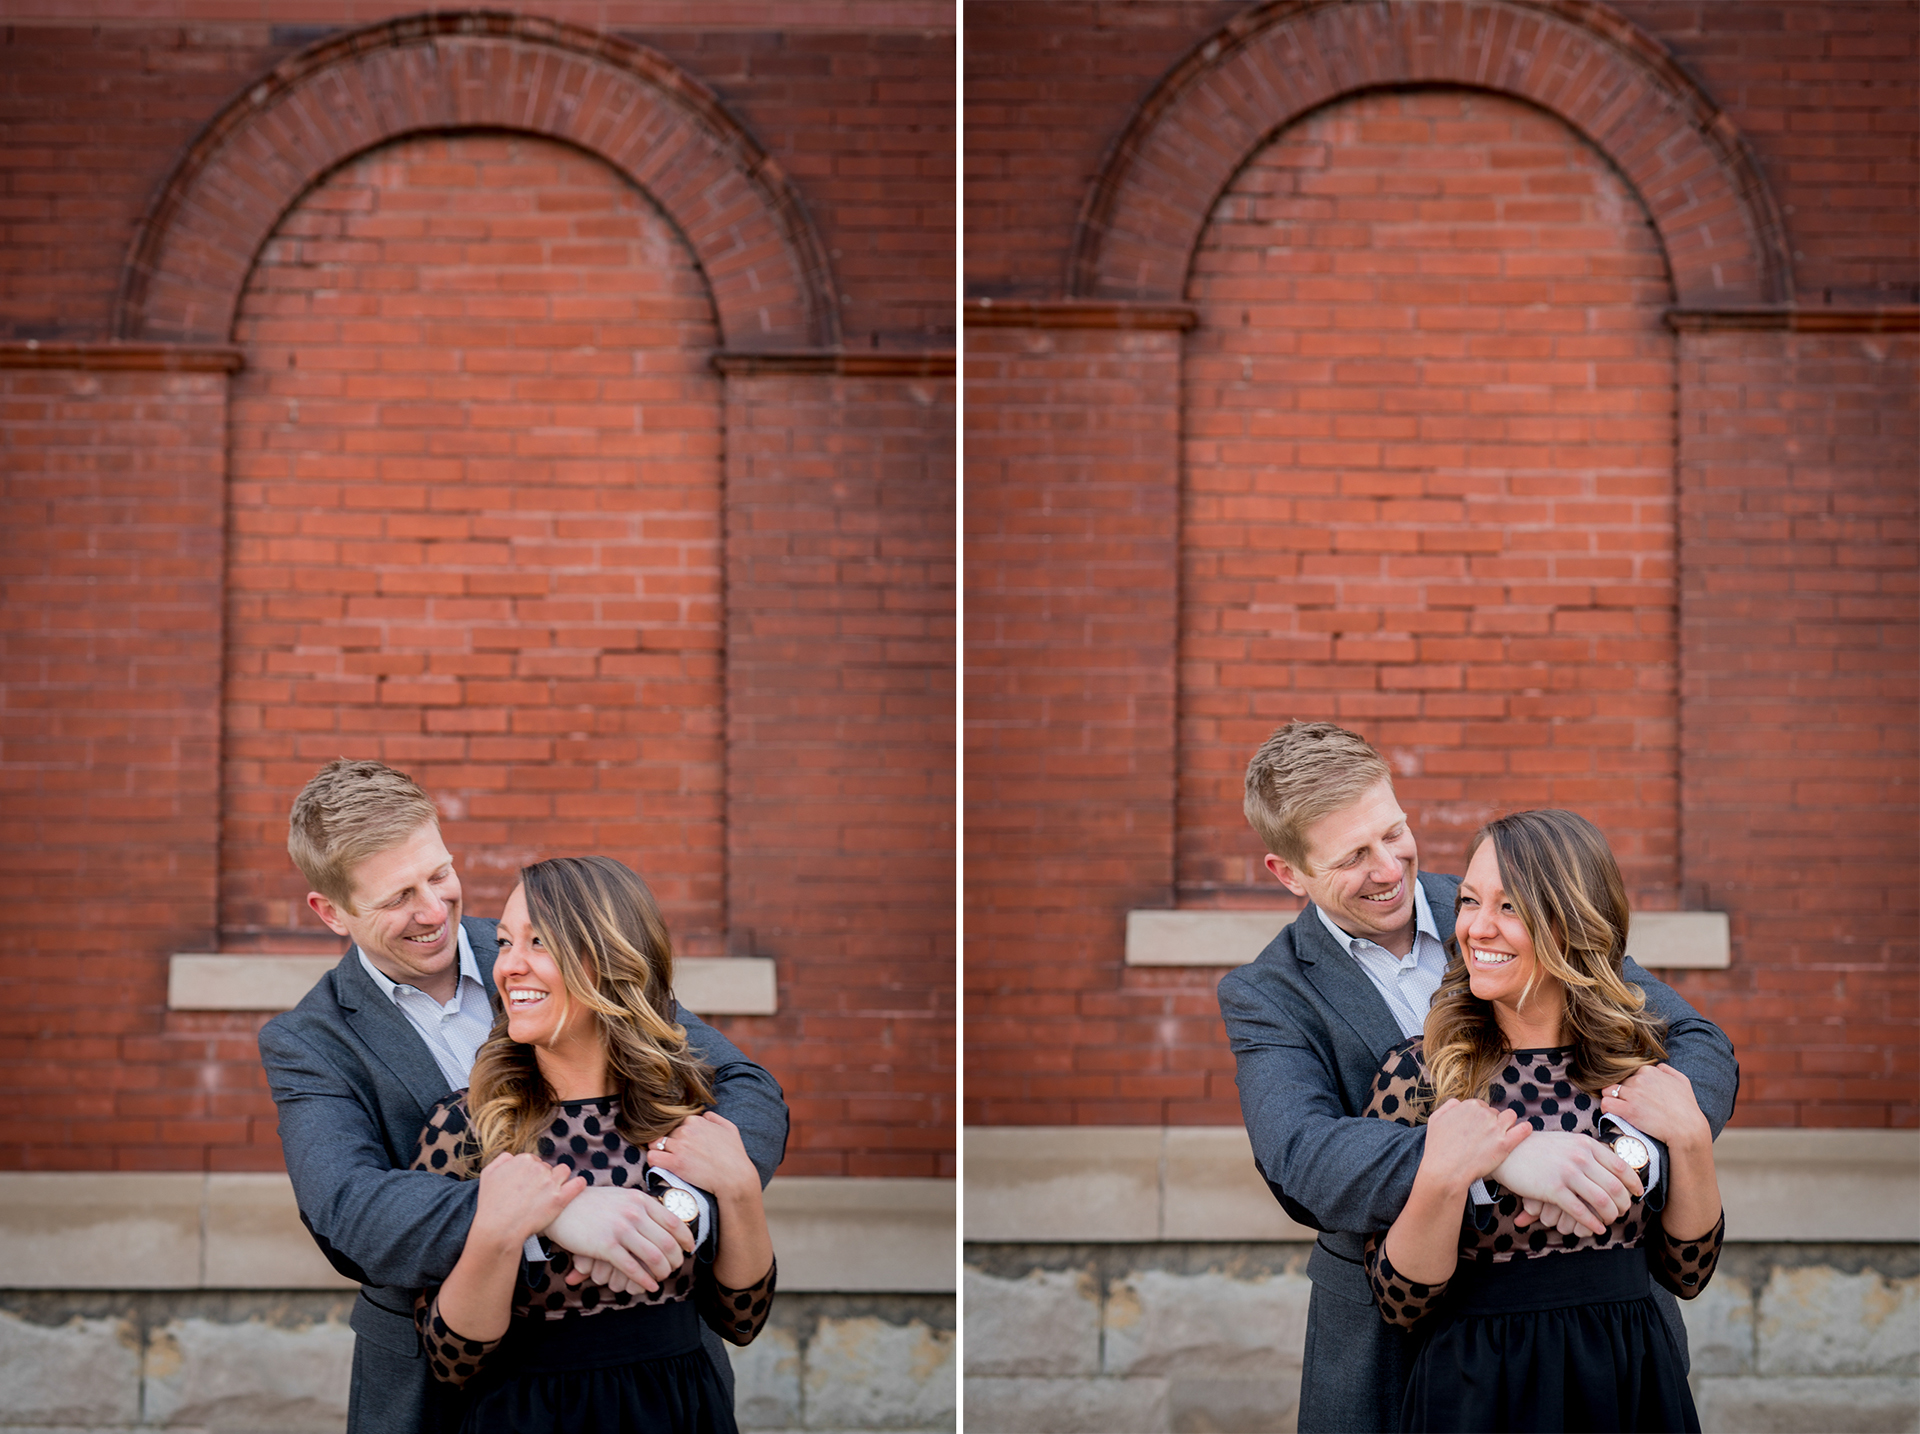 peoria illinois bloomington normal engagement pictures peoria riverfront wedding photographer-9.jpg